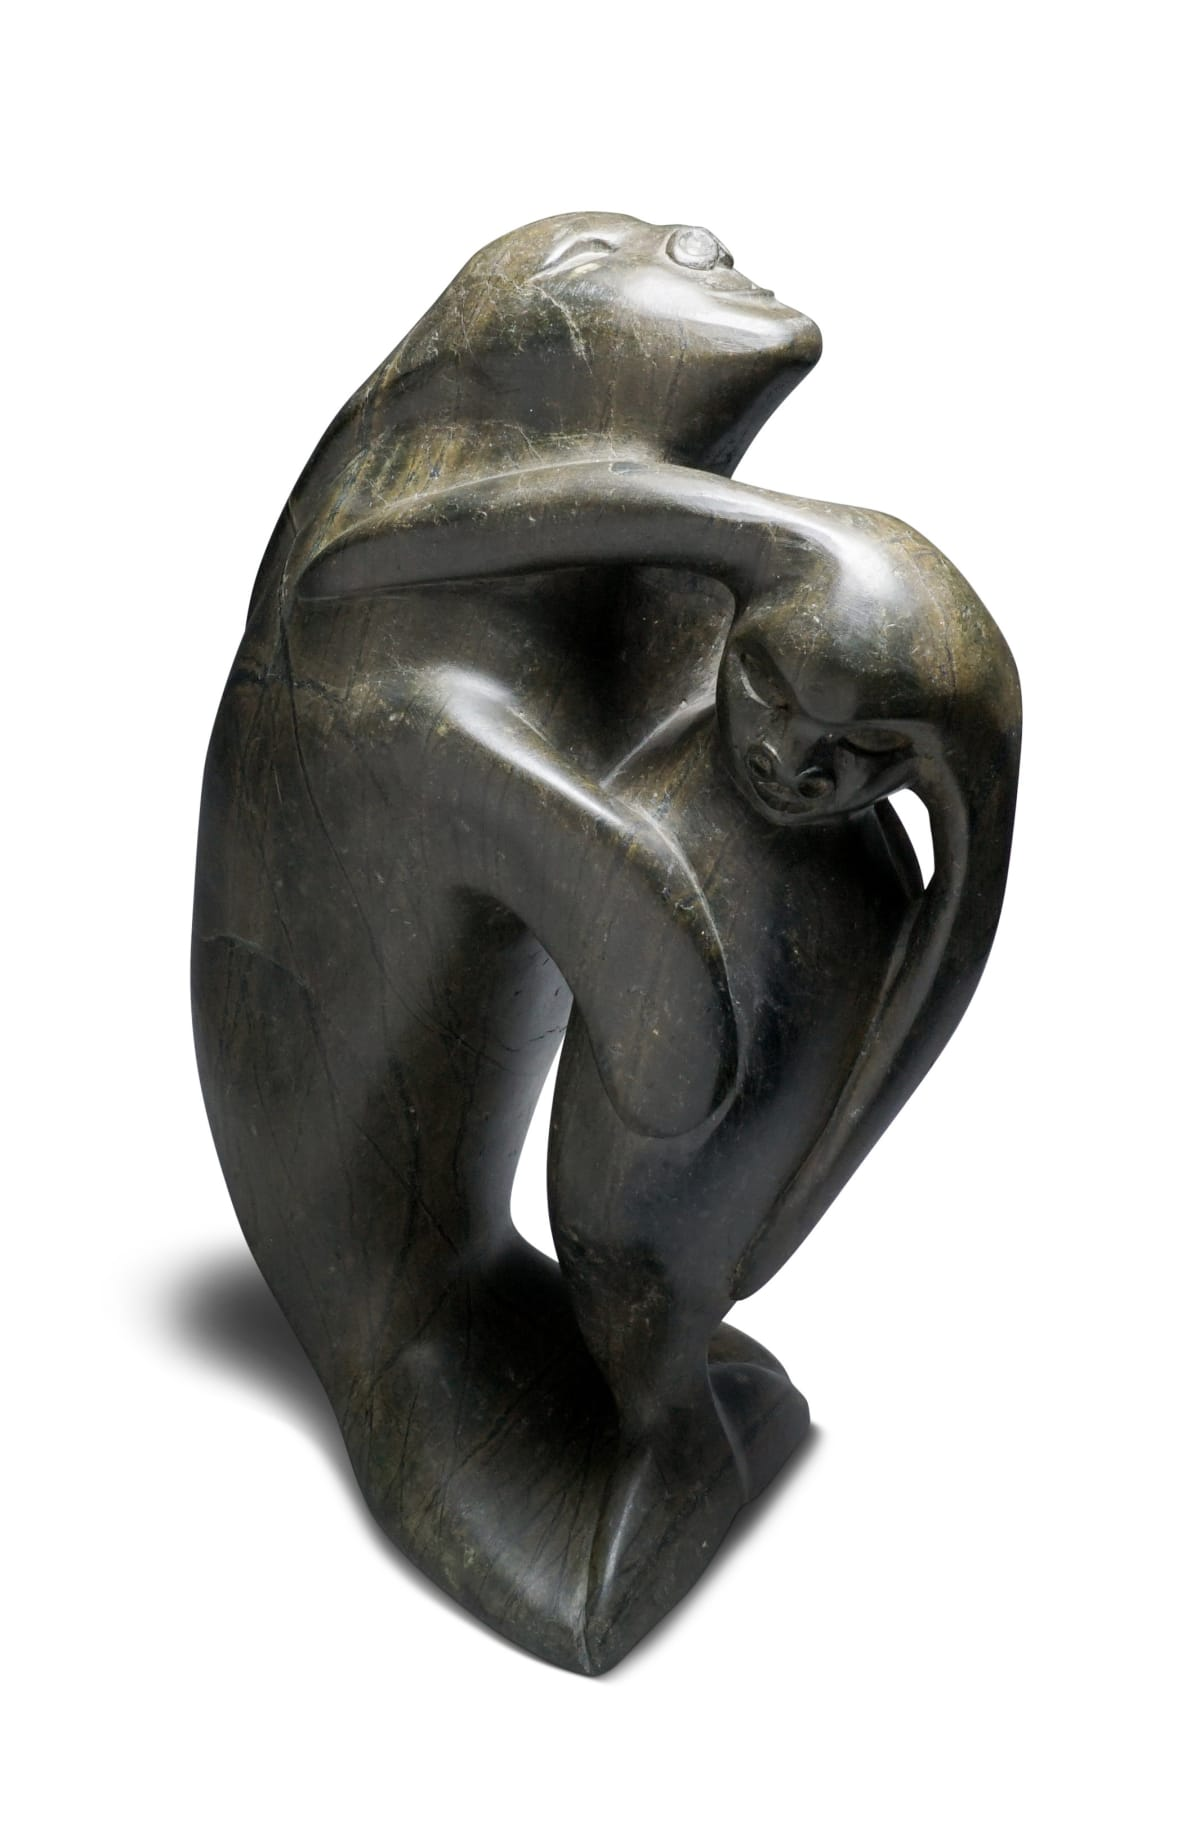 LOT 2 OSUITOK IPEELEE, R.C.A. (1923-2005) KINNGAIT (CAPE DORSET) Swimming Sedna With Her Child, c. 1970s stone, 16 x 10 x 6 in (40.6 x 25.4 x 15.2 cm) ESTIMATE: $2,500 — $3,500